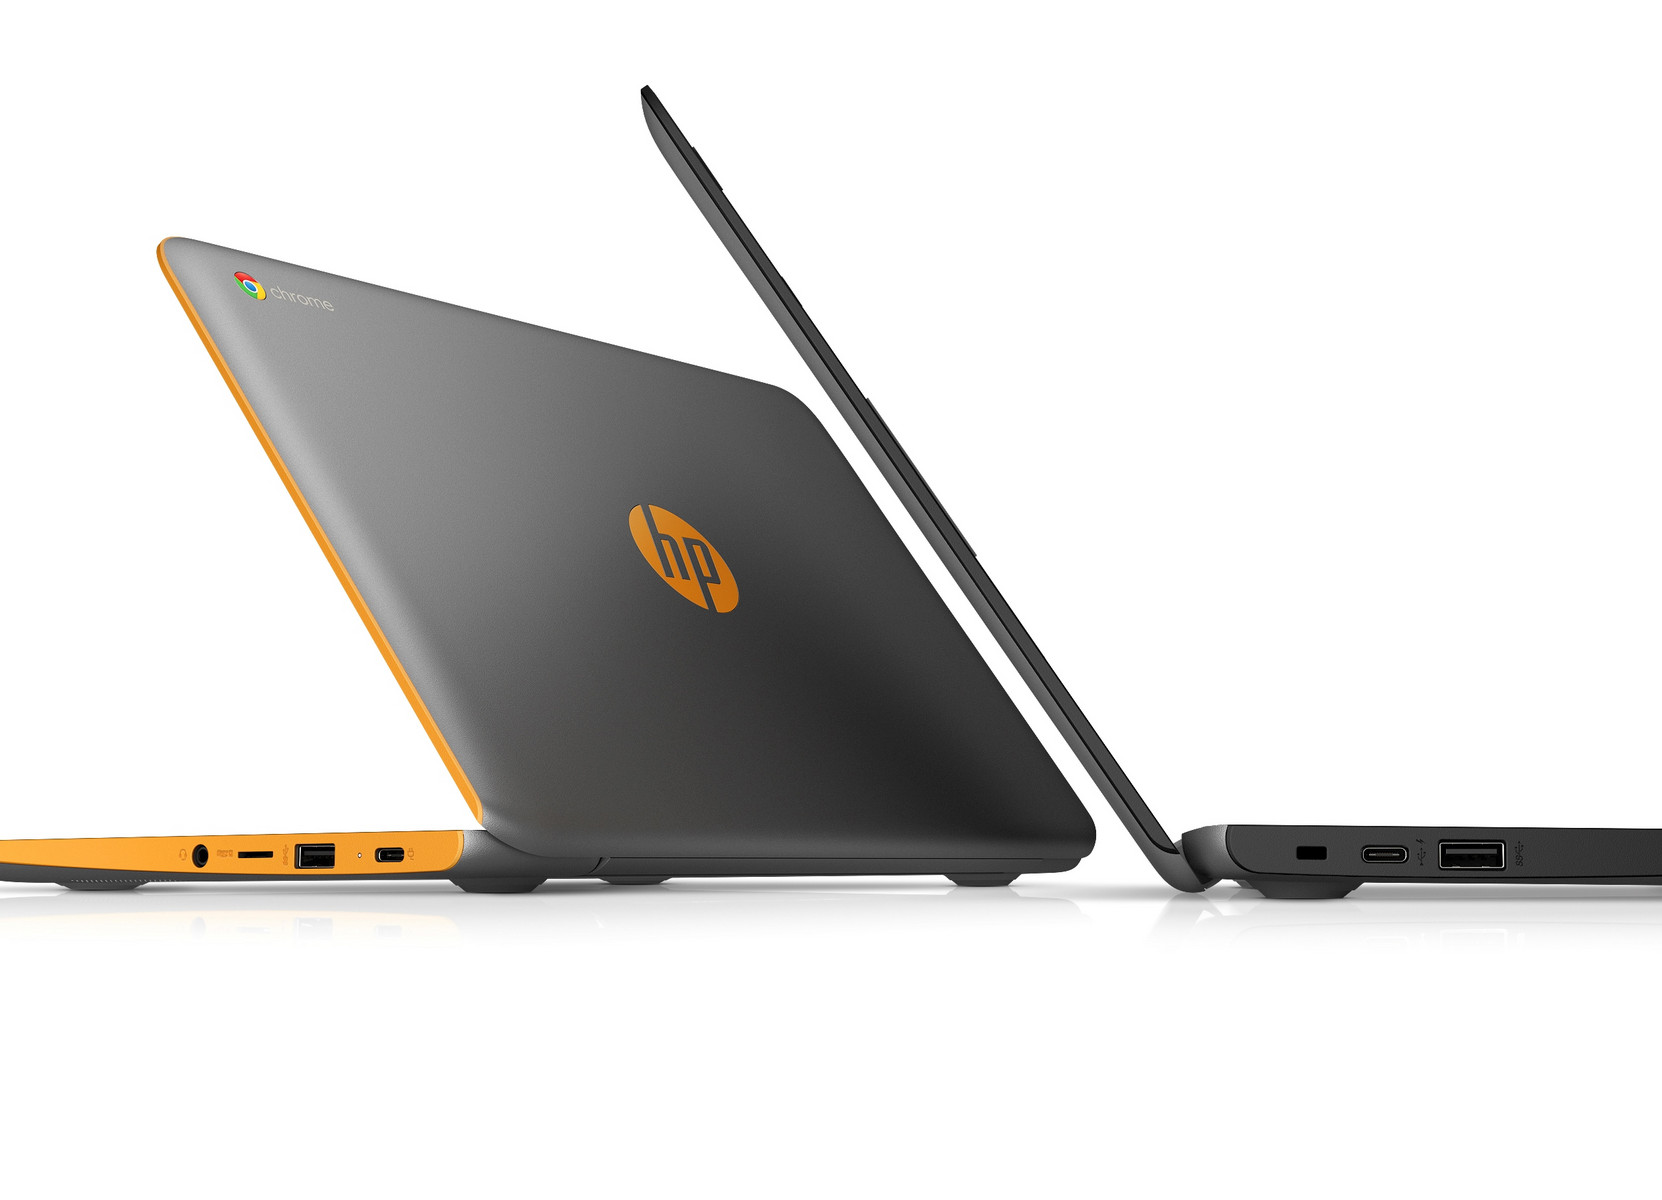 Hp Chromebook 11 G6 And 14 G5 Coming With Mil Std Certified Designs